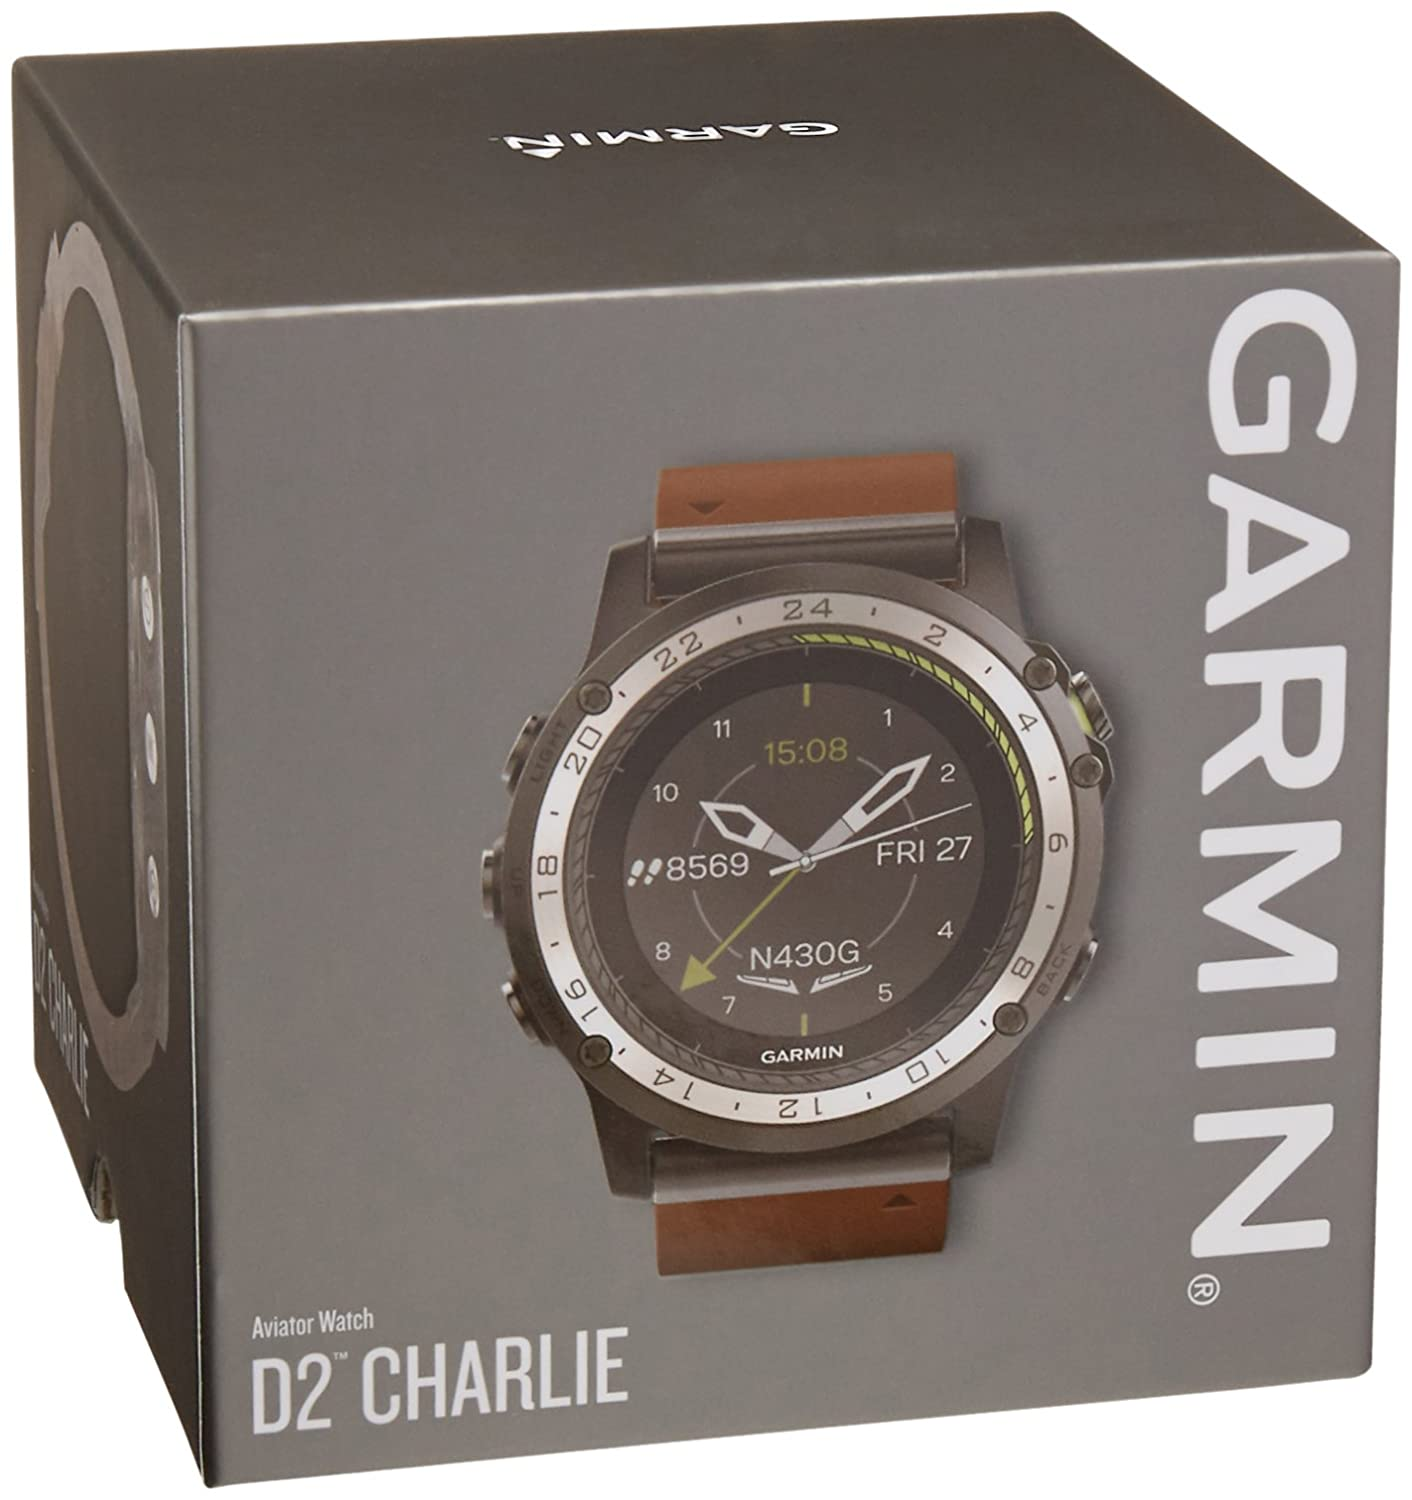 a367801ff Amazon.com: D2 Charlie Aviator Watch, Leather Band (Americas): GPS &  Navigation